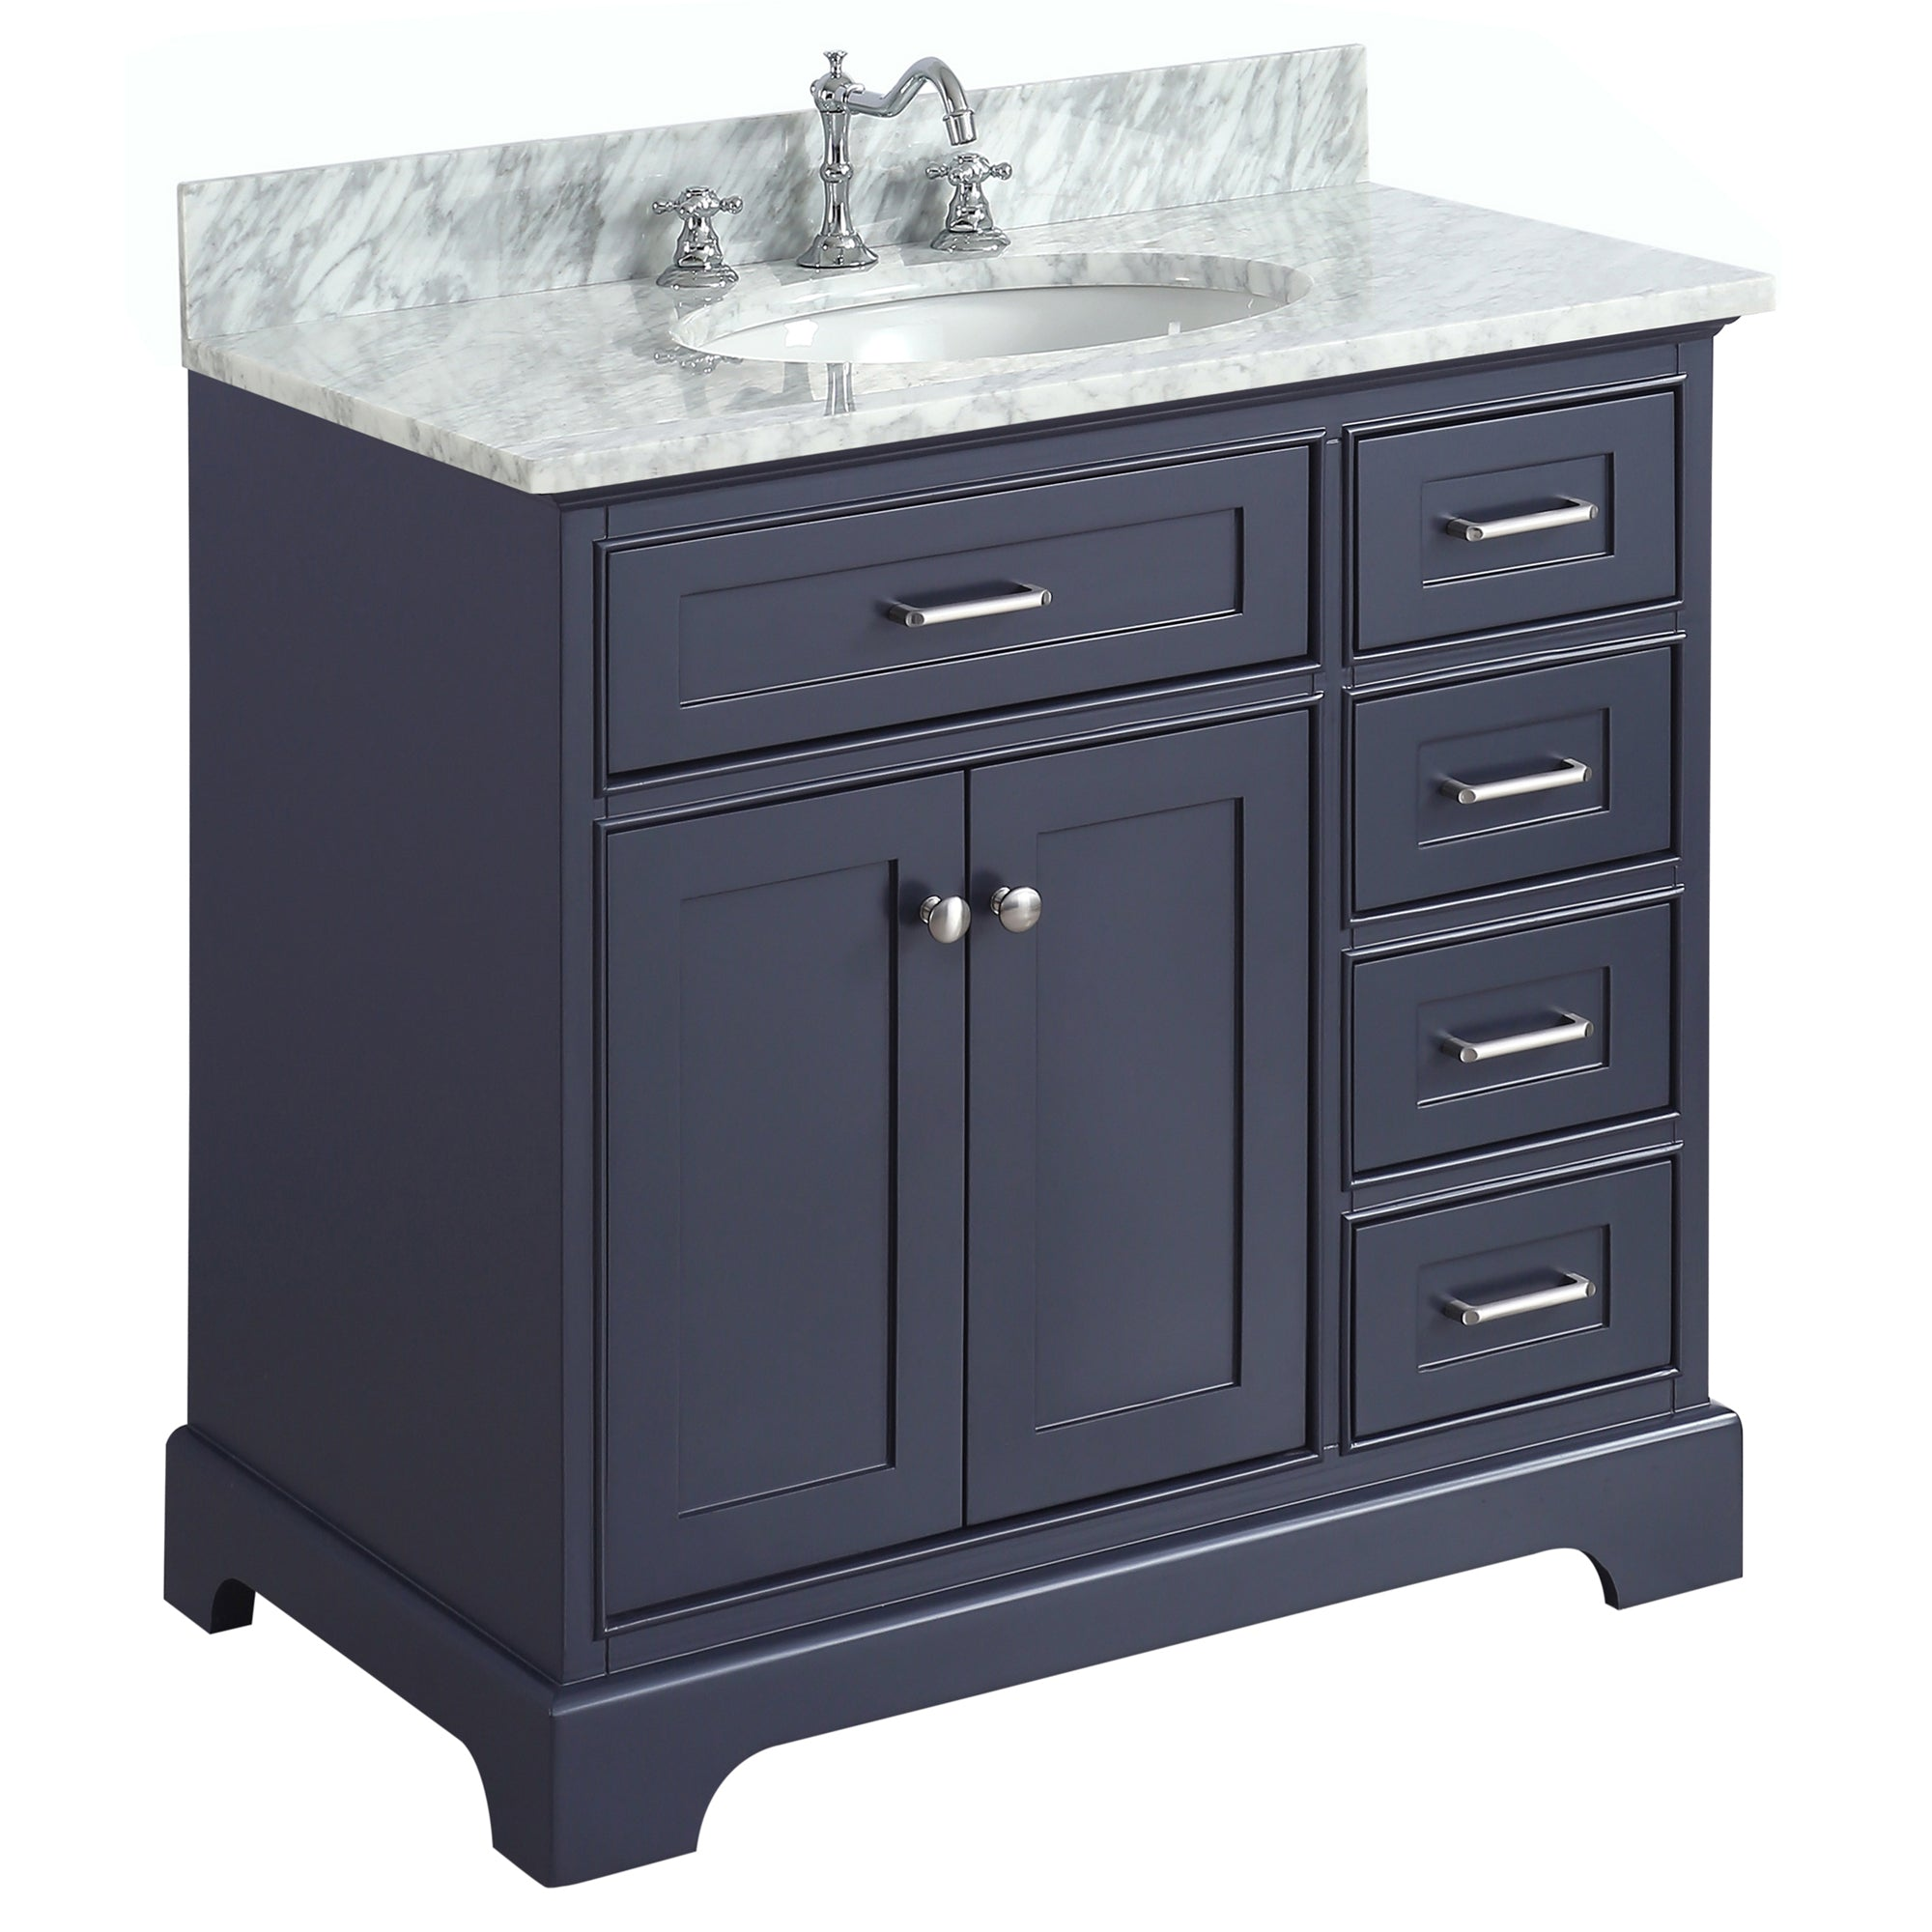 36 Inch Solid Wood Bathroom Vanity Cabinet In Grey/charcoal